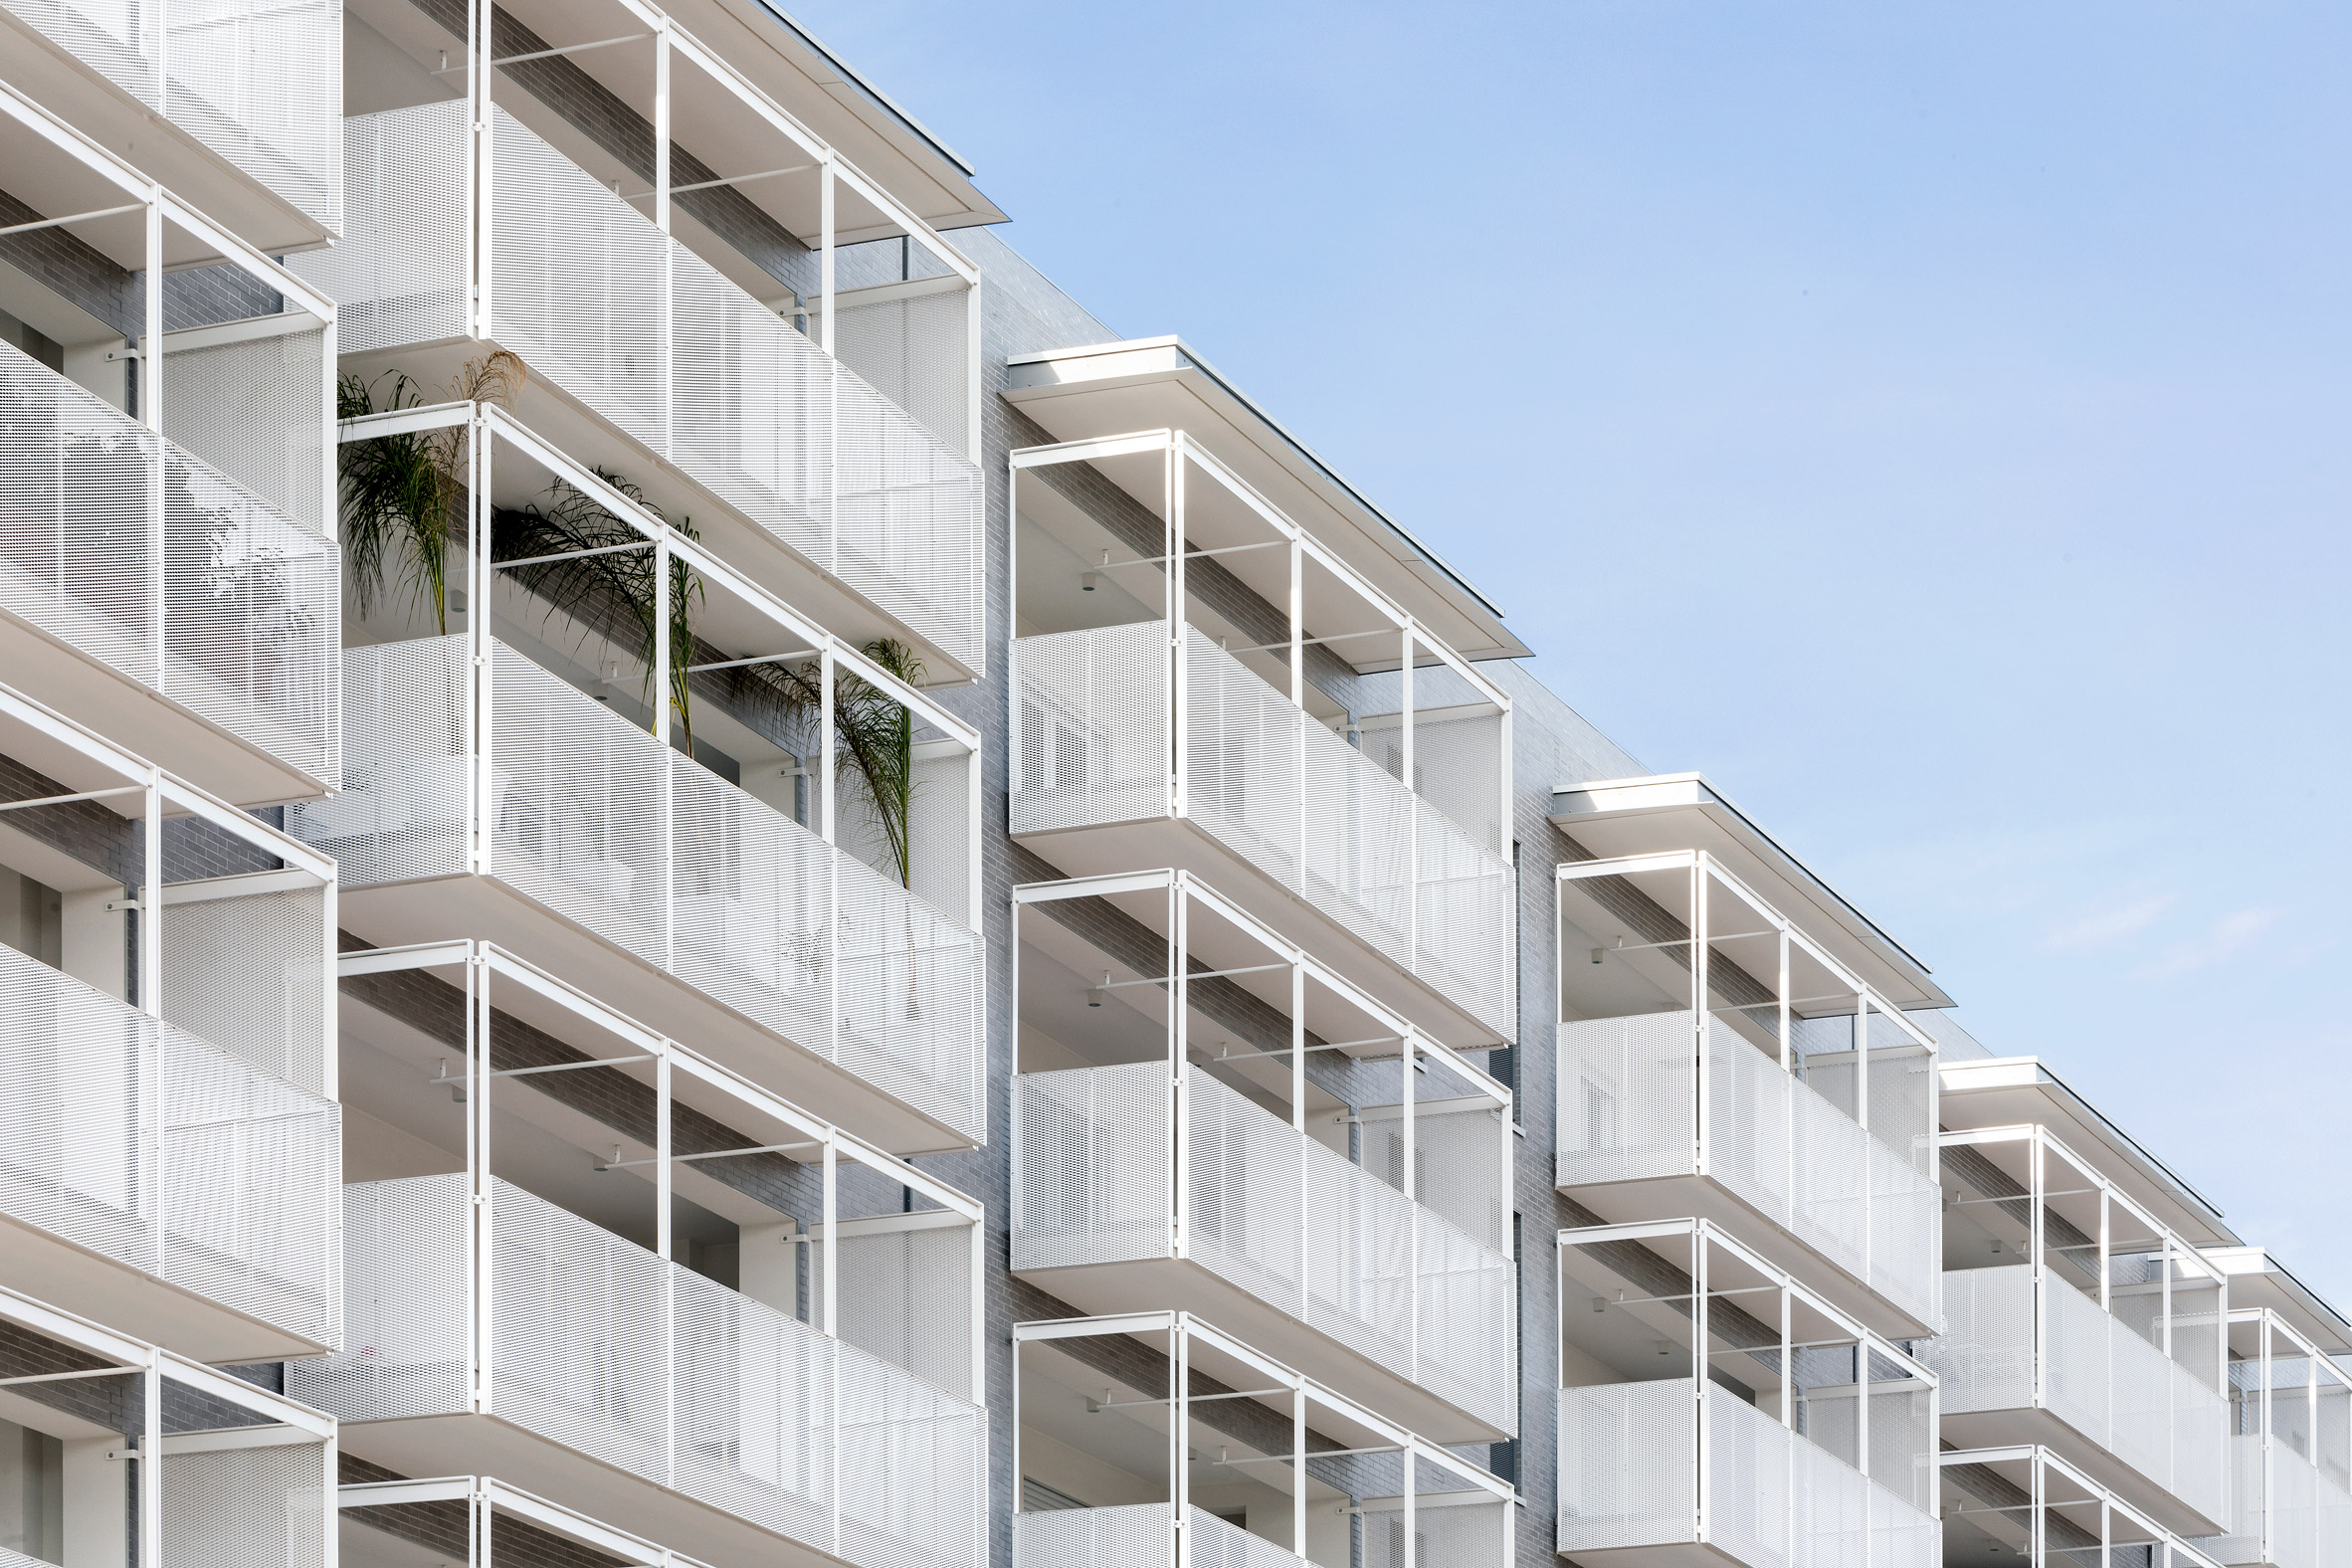 White perforated balconies protrude from the brick